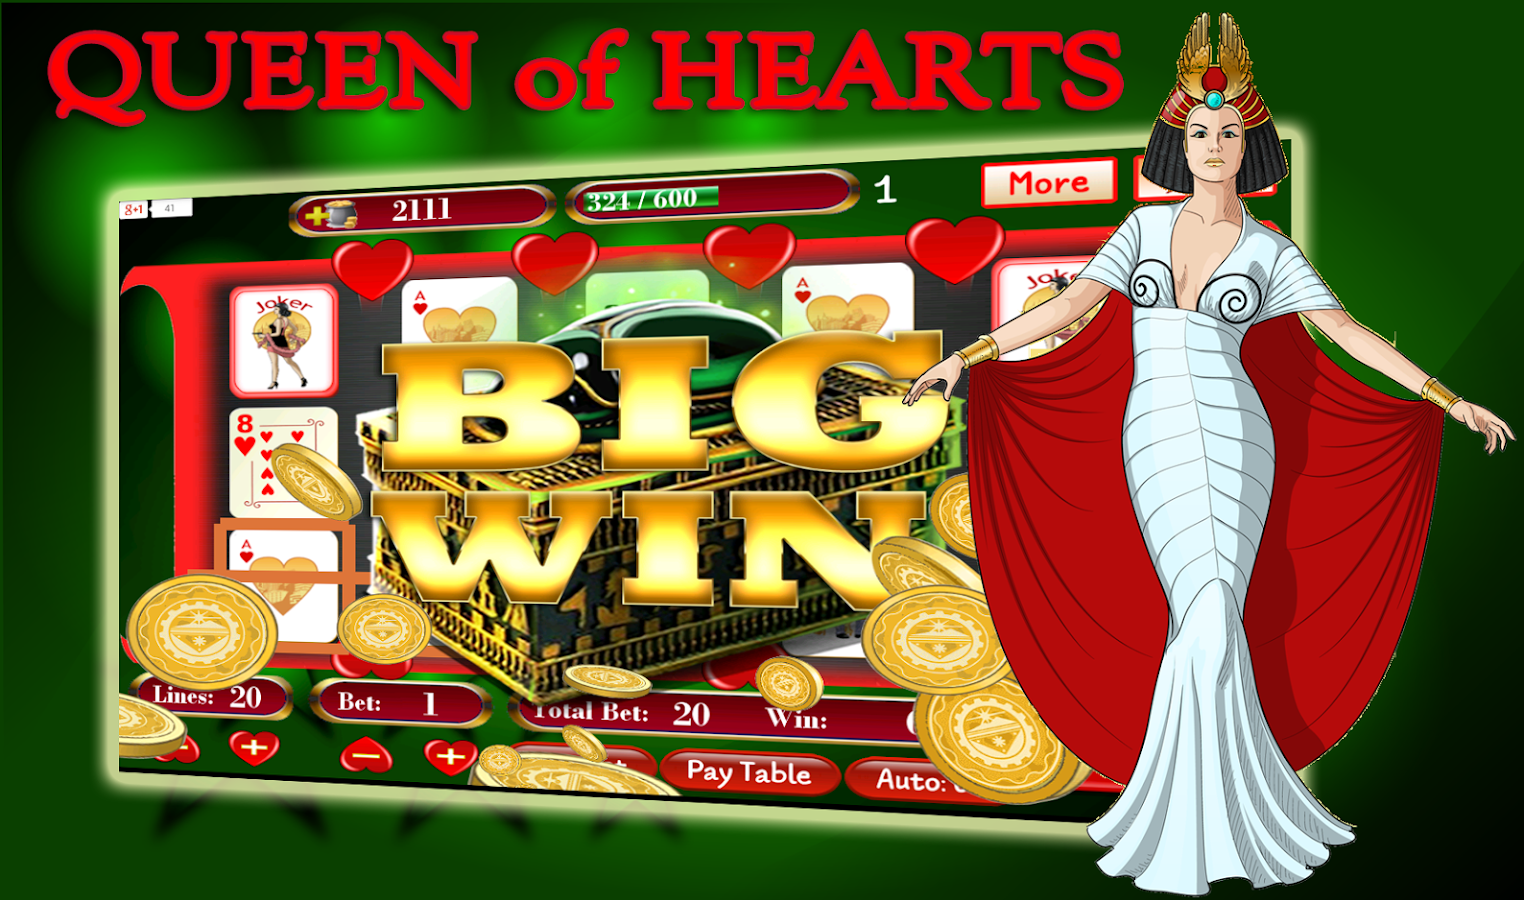 Queen of Hearts Slot Machine Online ᐈ ™ Casino Slots